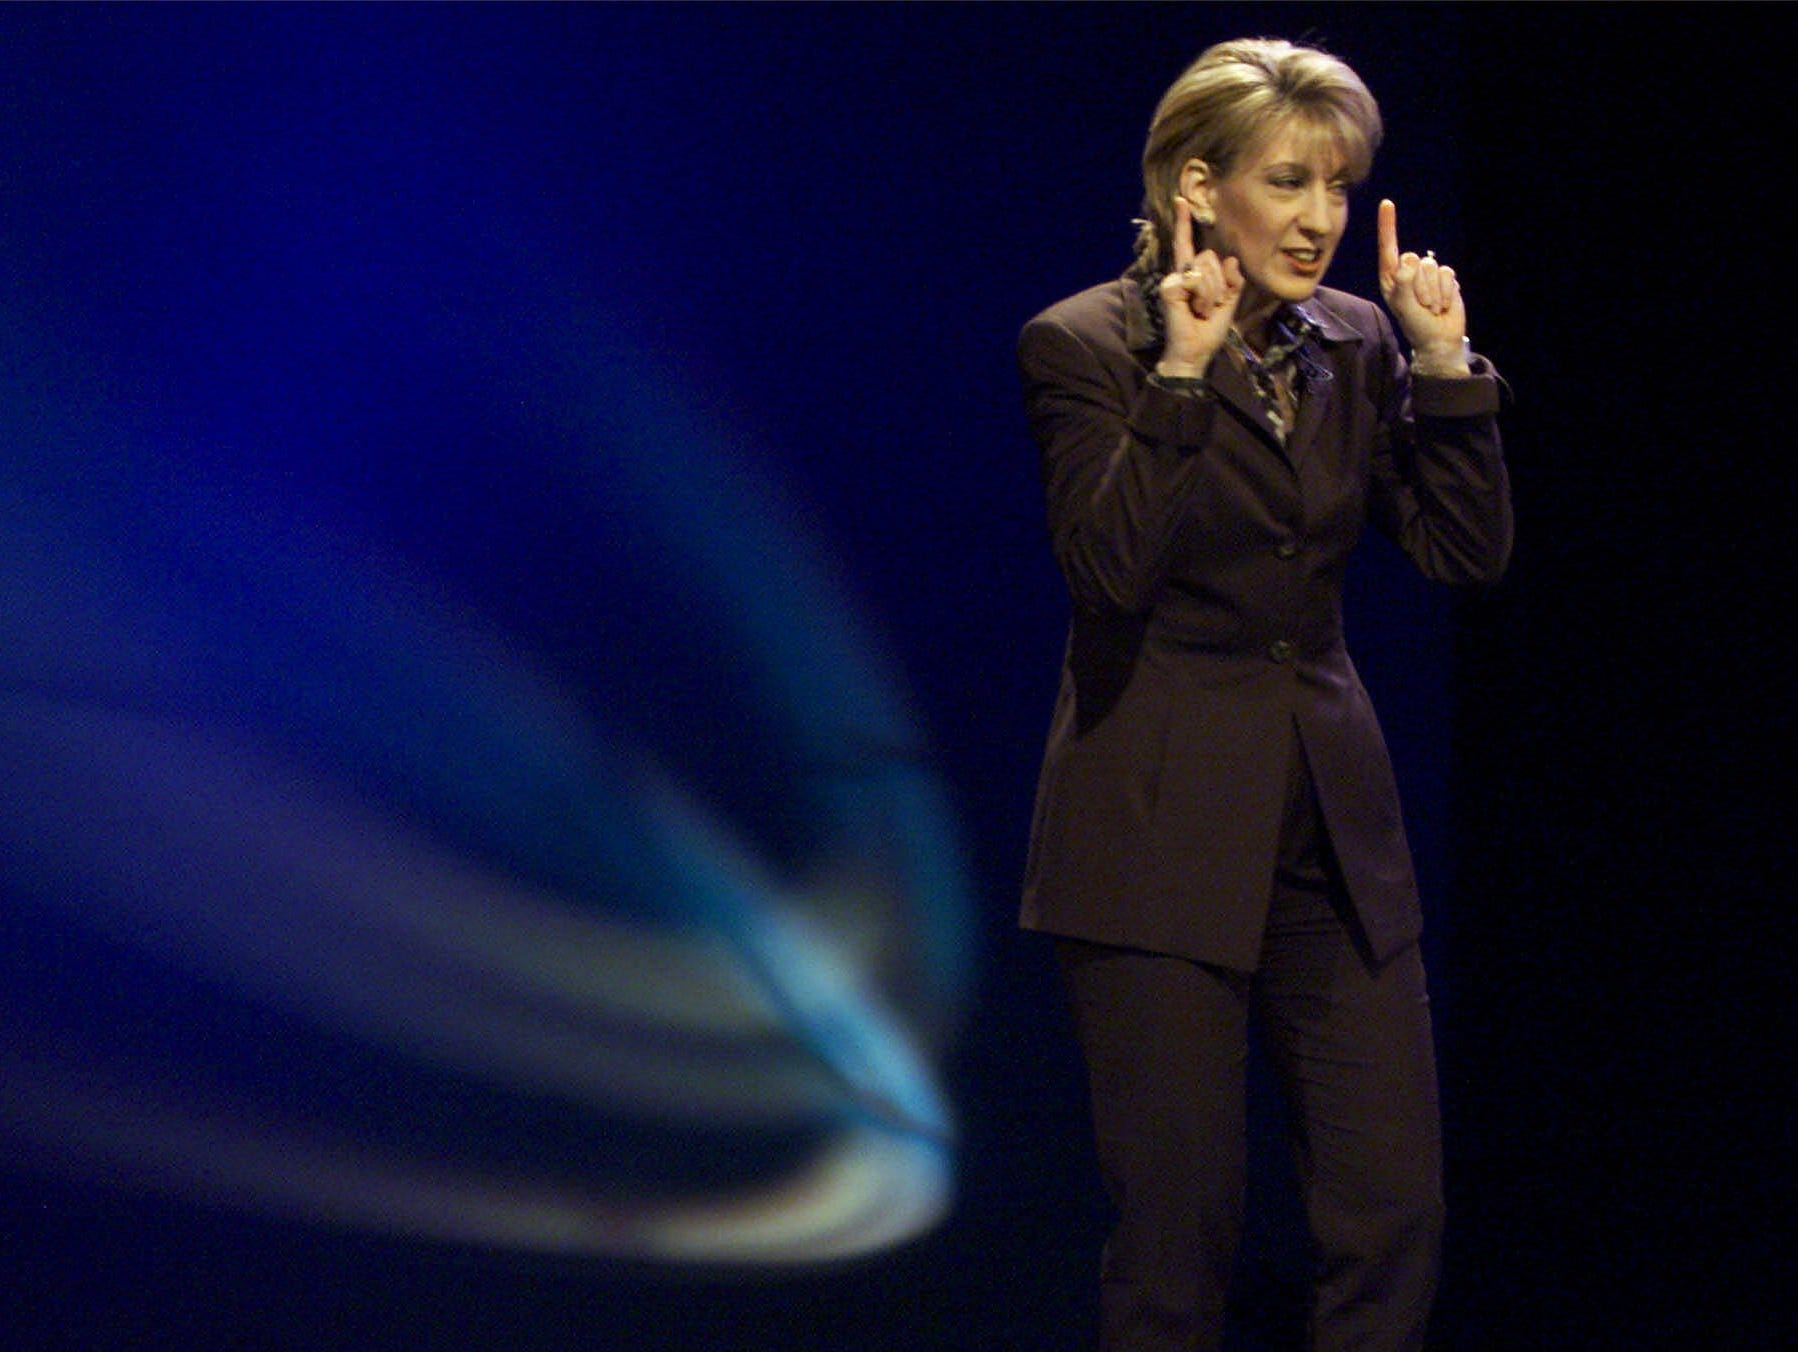 Hewlett-Packard CEO Carly Fiorina delivers the COMDEX keynote address on Nov. 15, 1999, at the Venetian Hotel and Casino in Las Vegas.